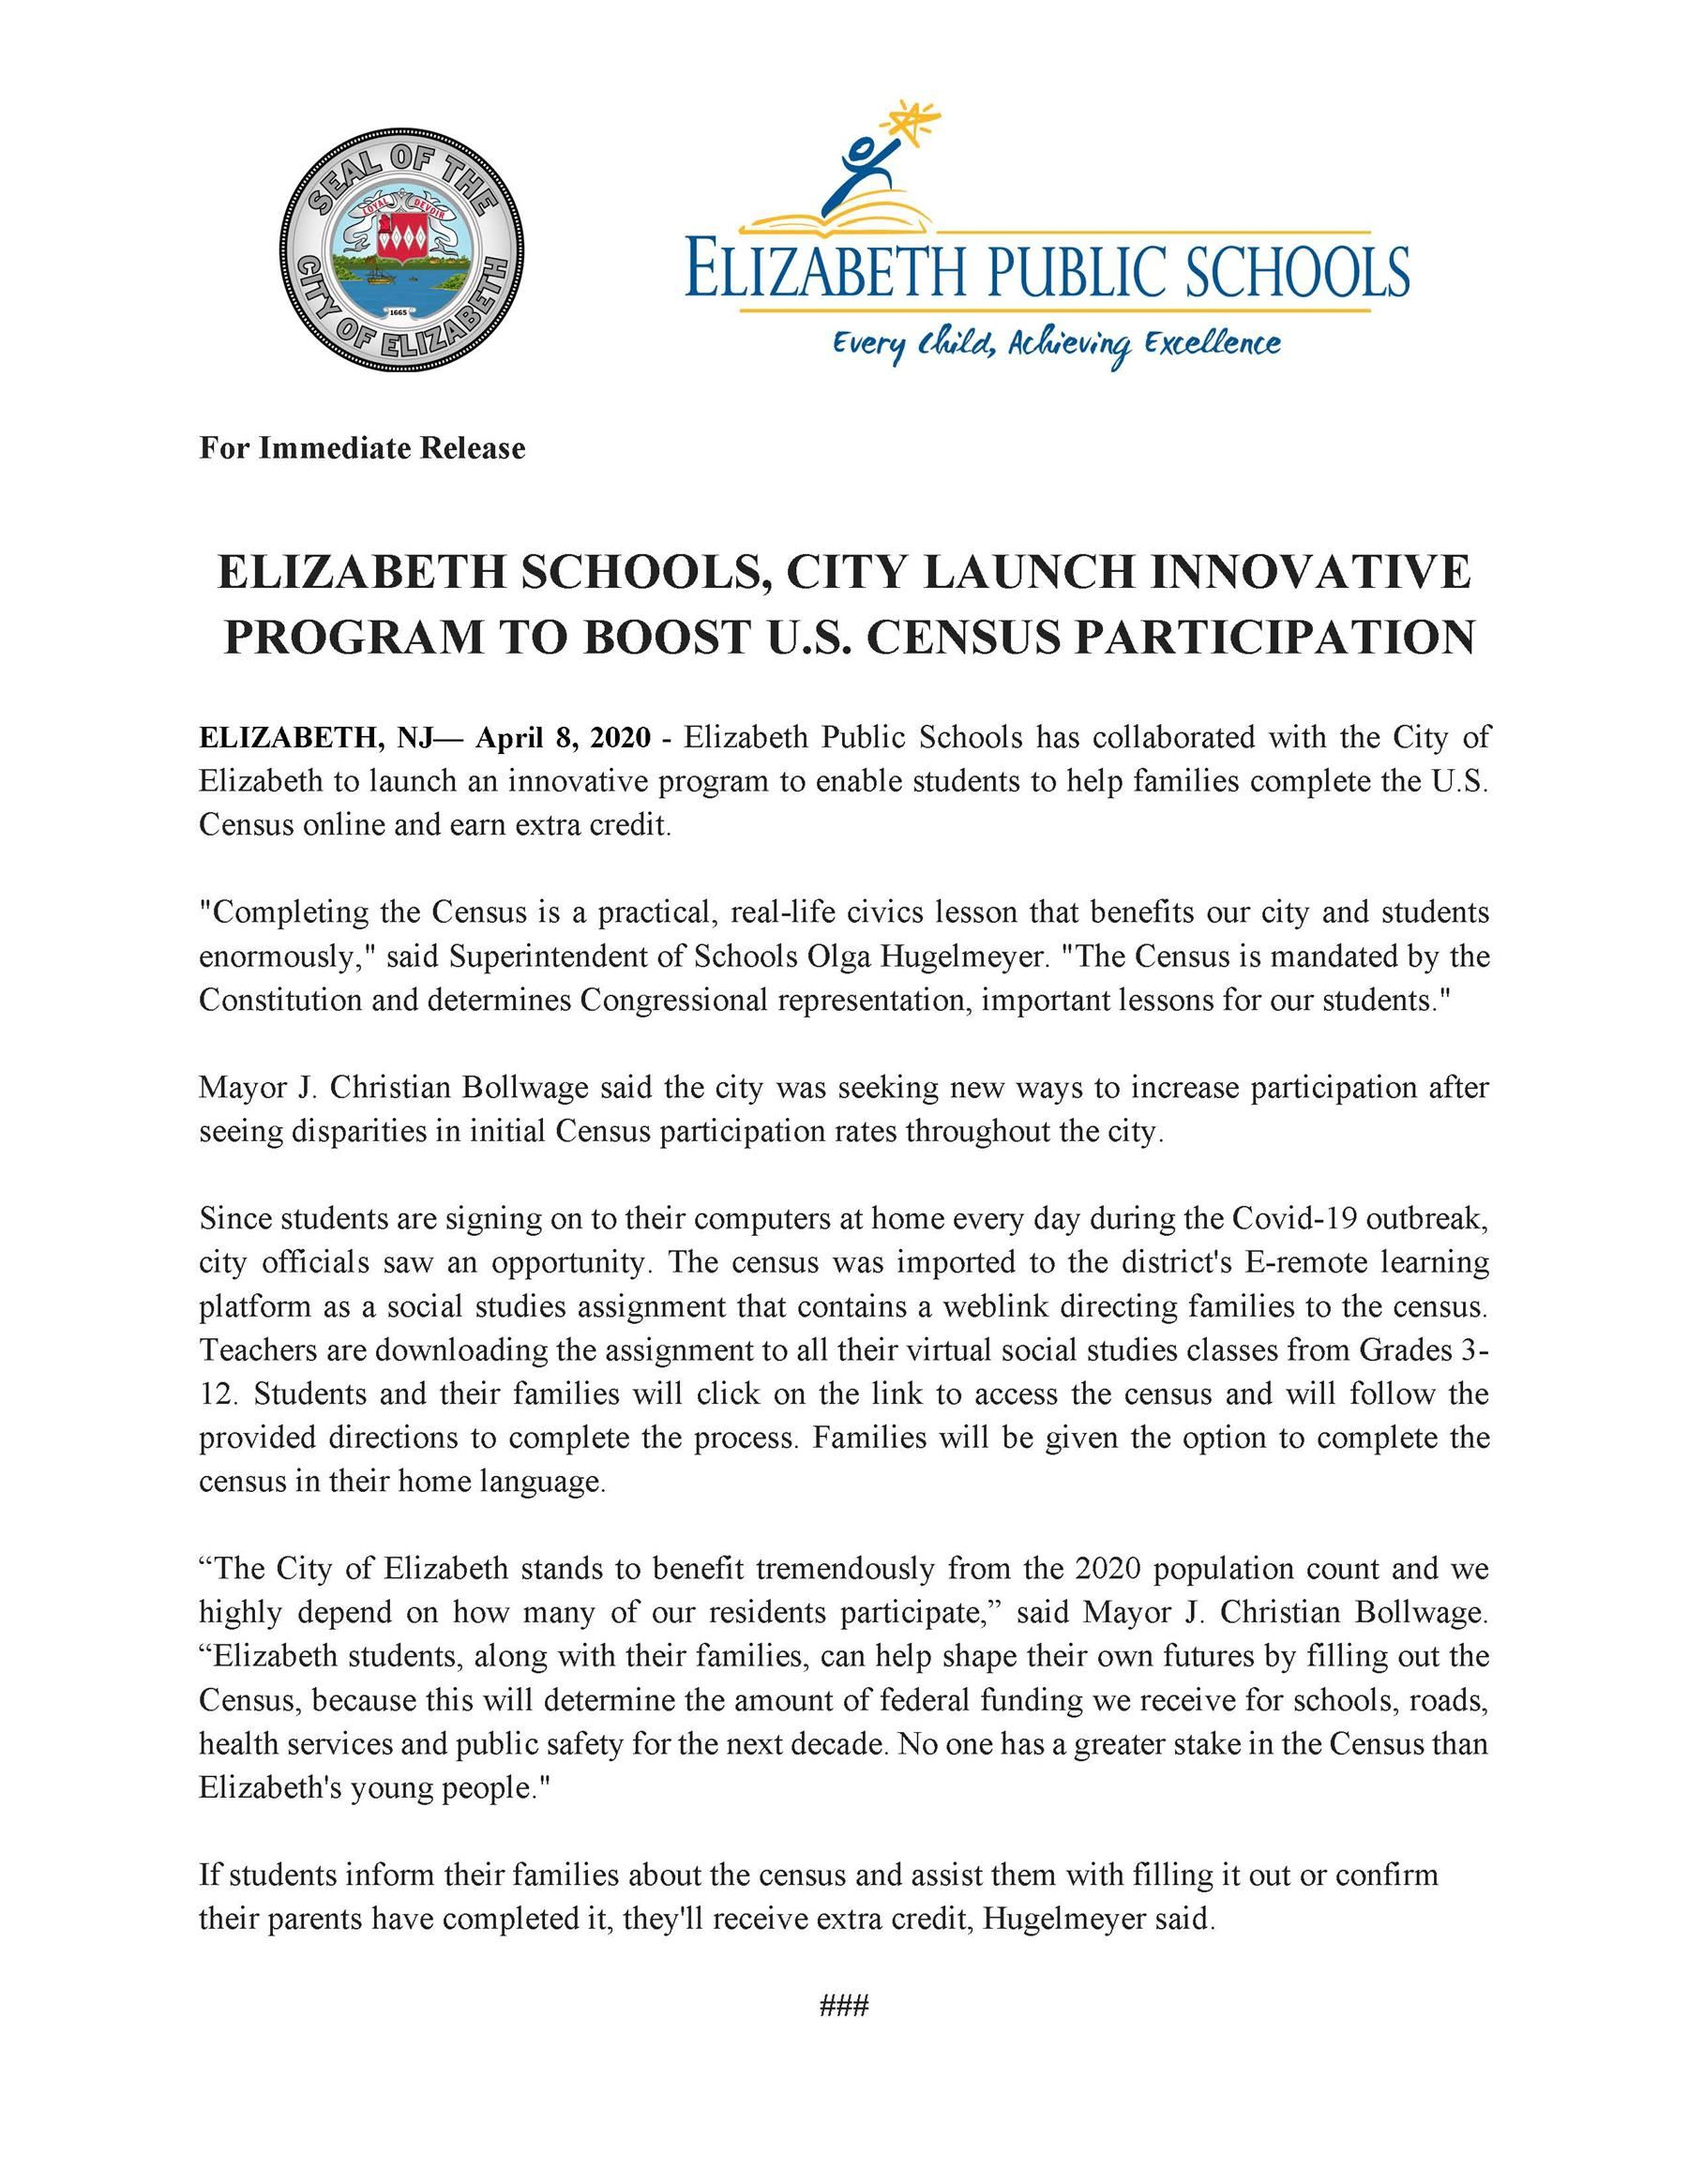 Elizabeth Schools City Launch Innovative Program To Boost US Census Participation